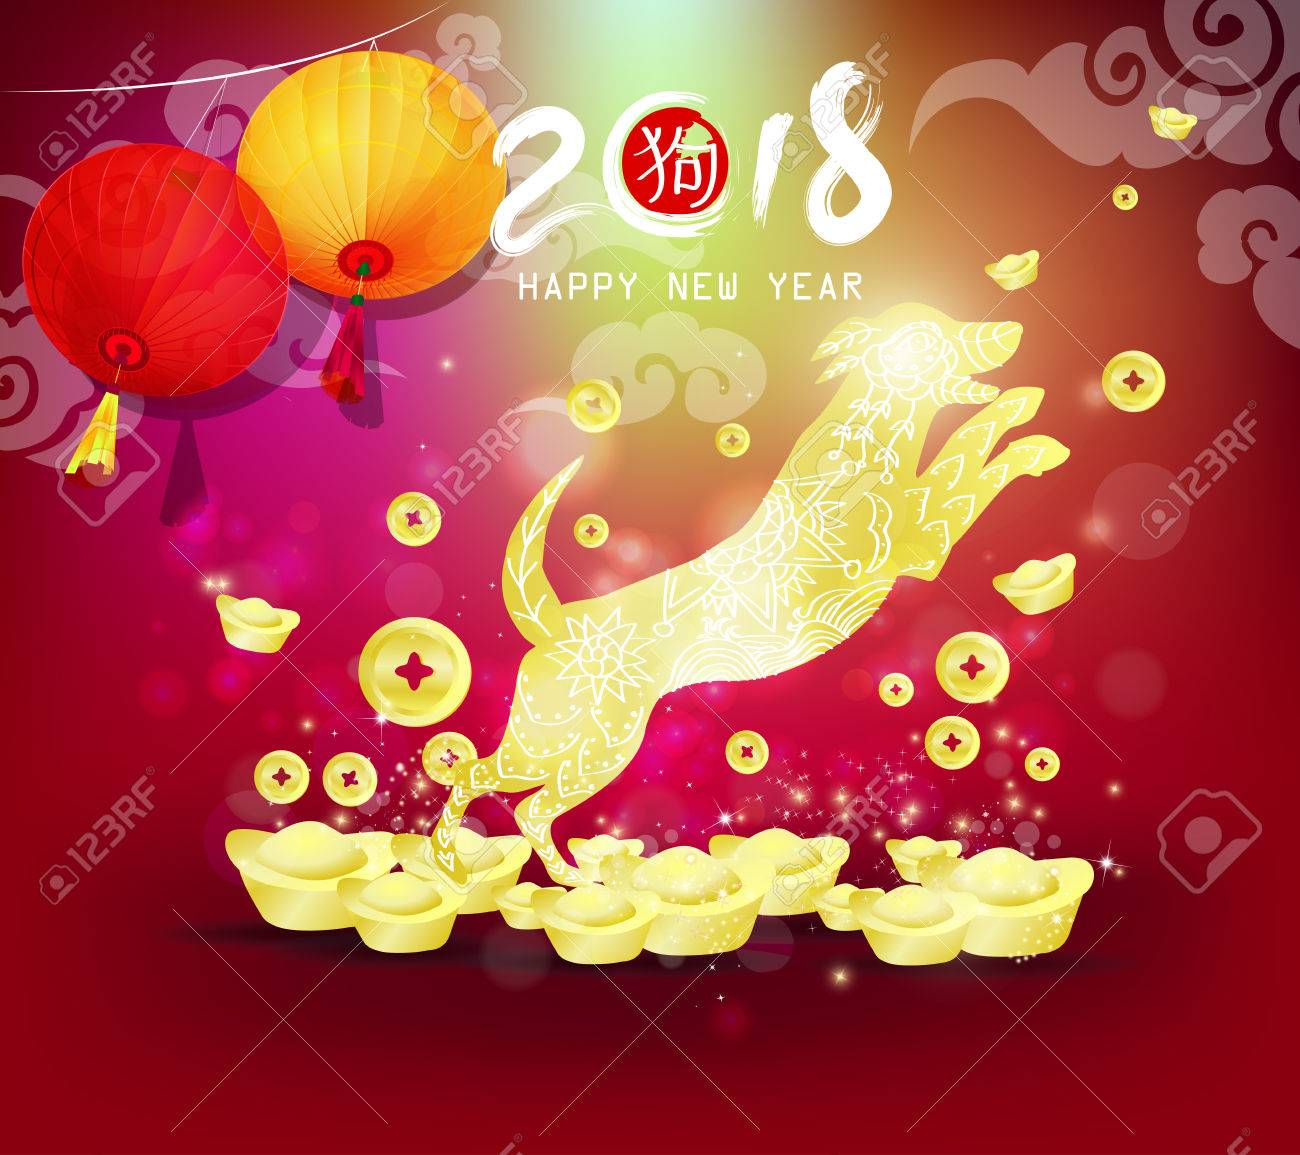 happy new year 2018 chinese new year of the dog with gold background stock vector